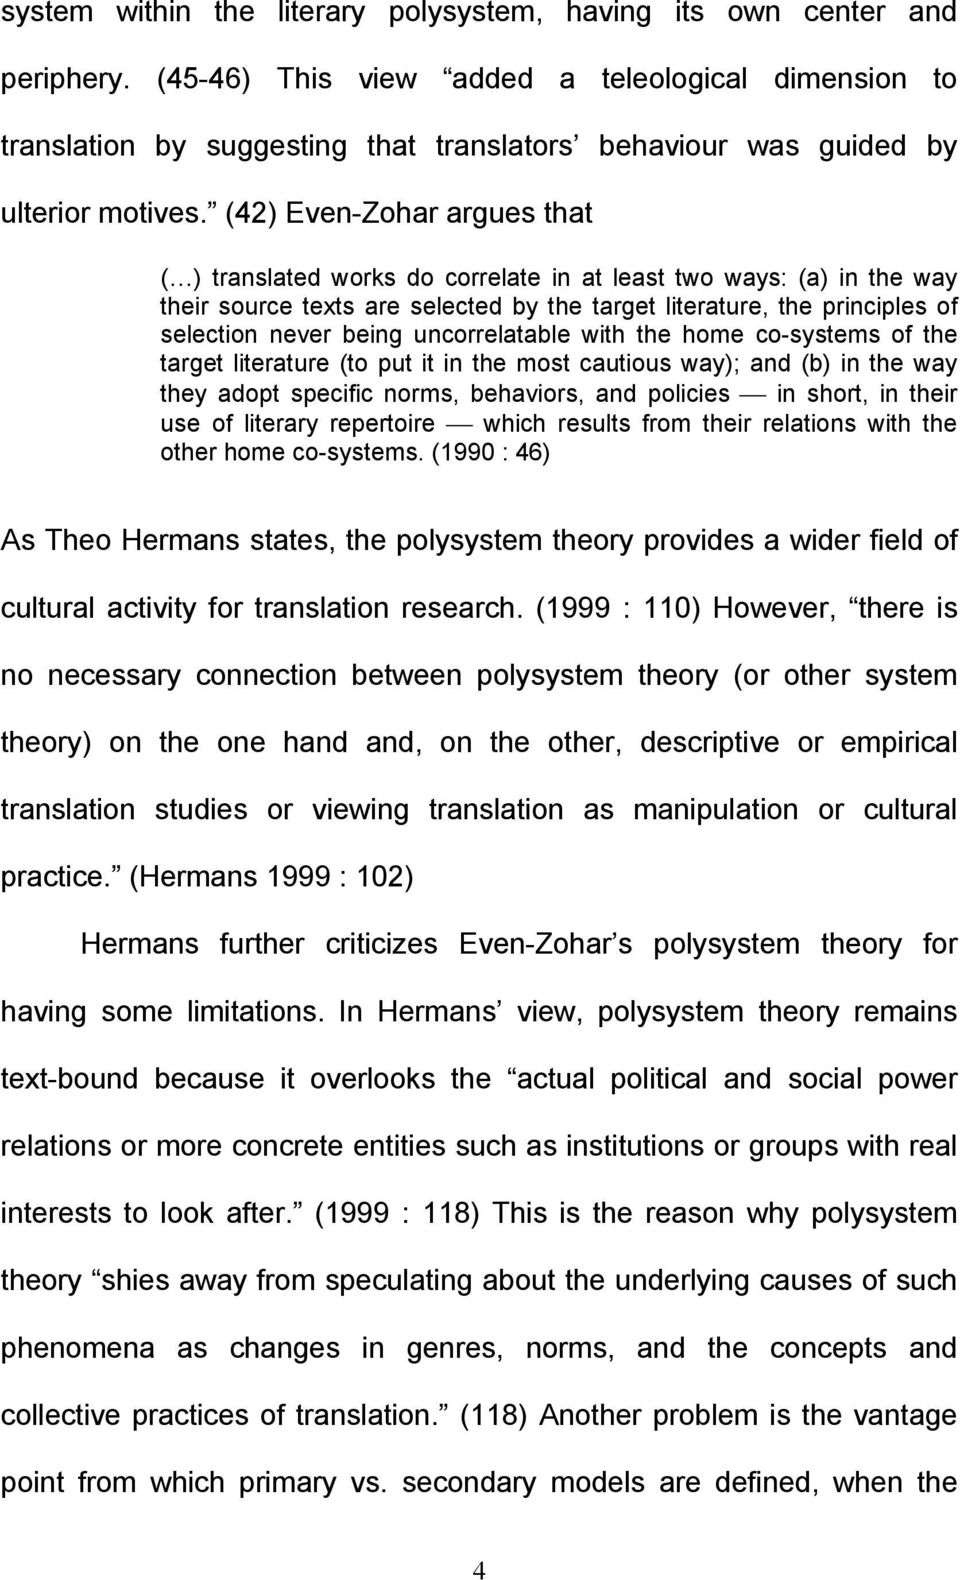 (42) Even-Zohar argues that ( ) translated works do correlate in at least two ways: (a) in the way their source texts are selected by the target literature, the principles of selection never being